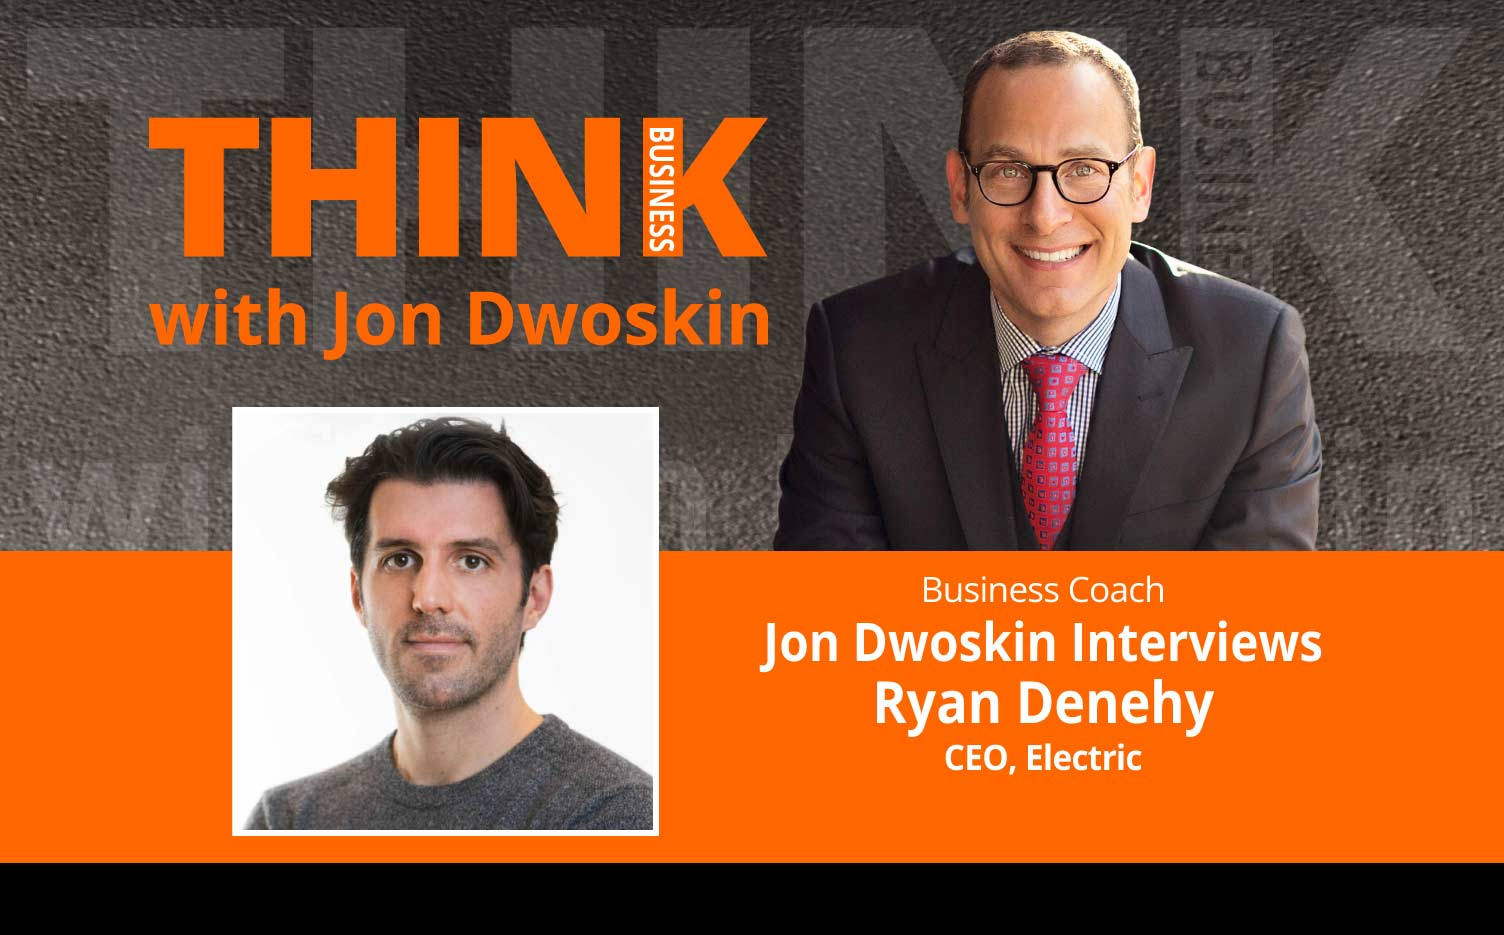 THINK Business Podcast: Jon Dwoskin Interviews Ryan Denehy, CEO, Electric